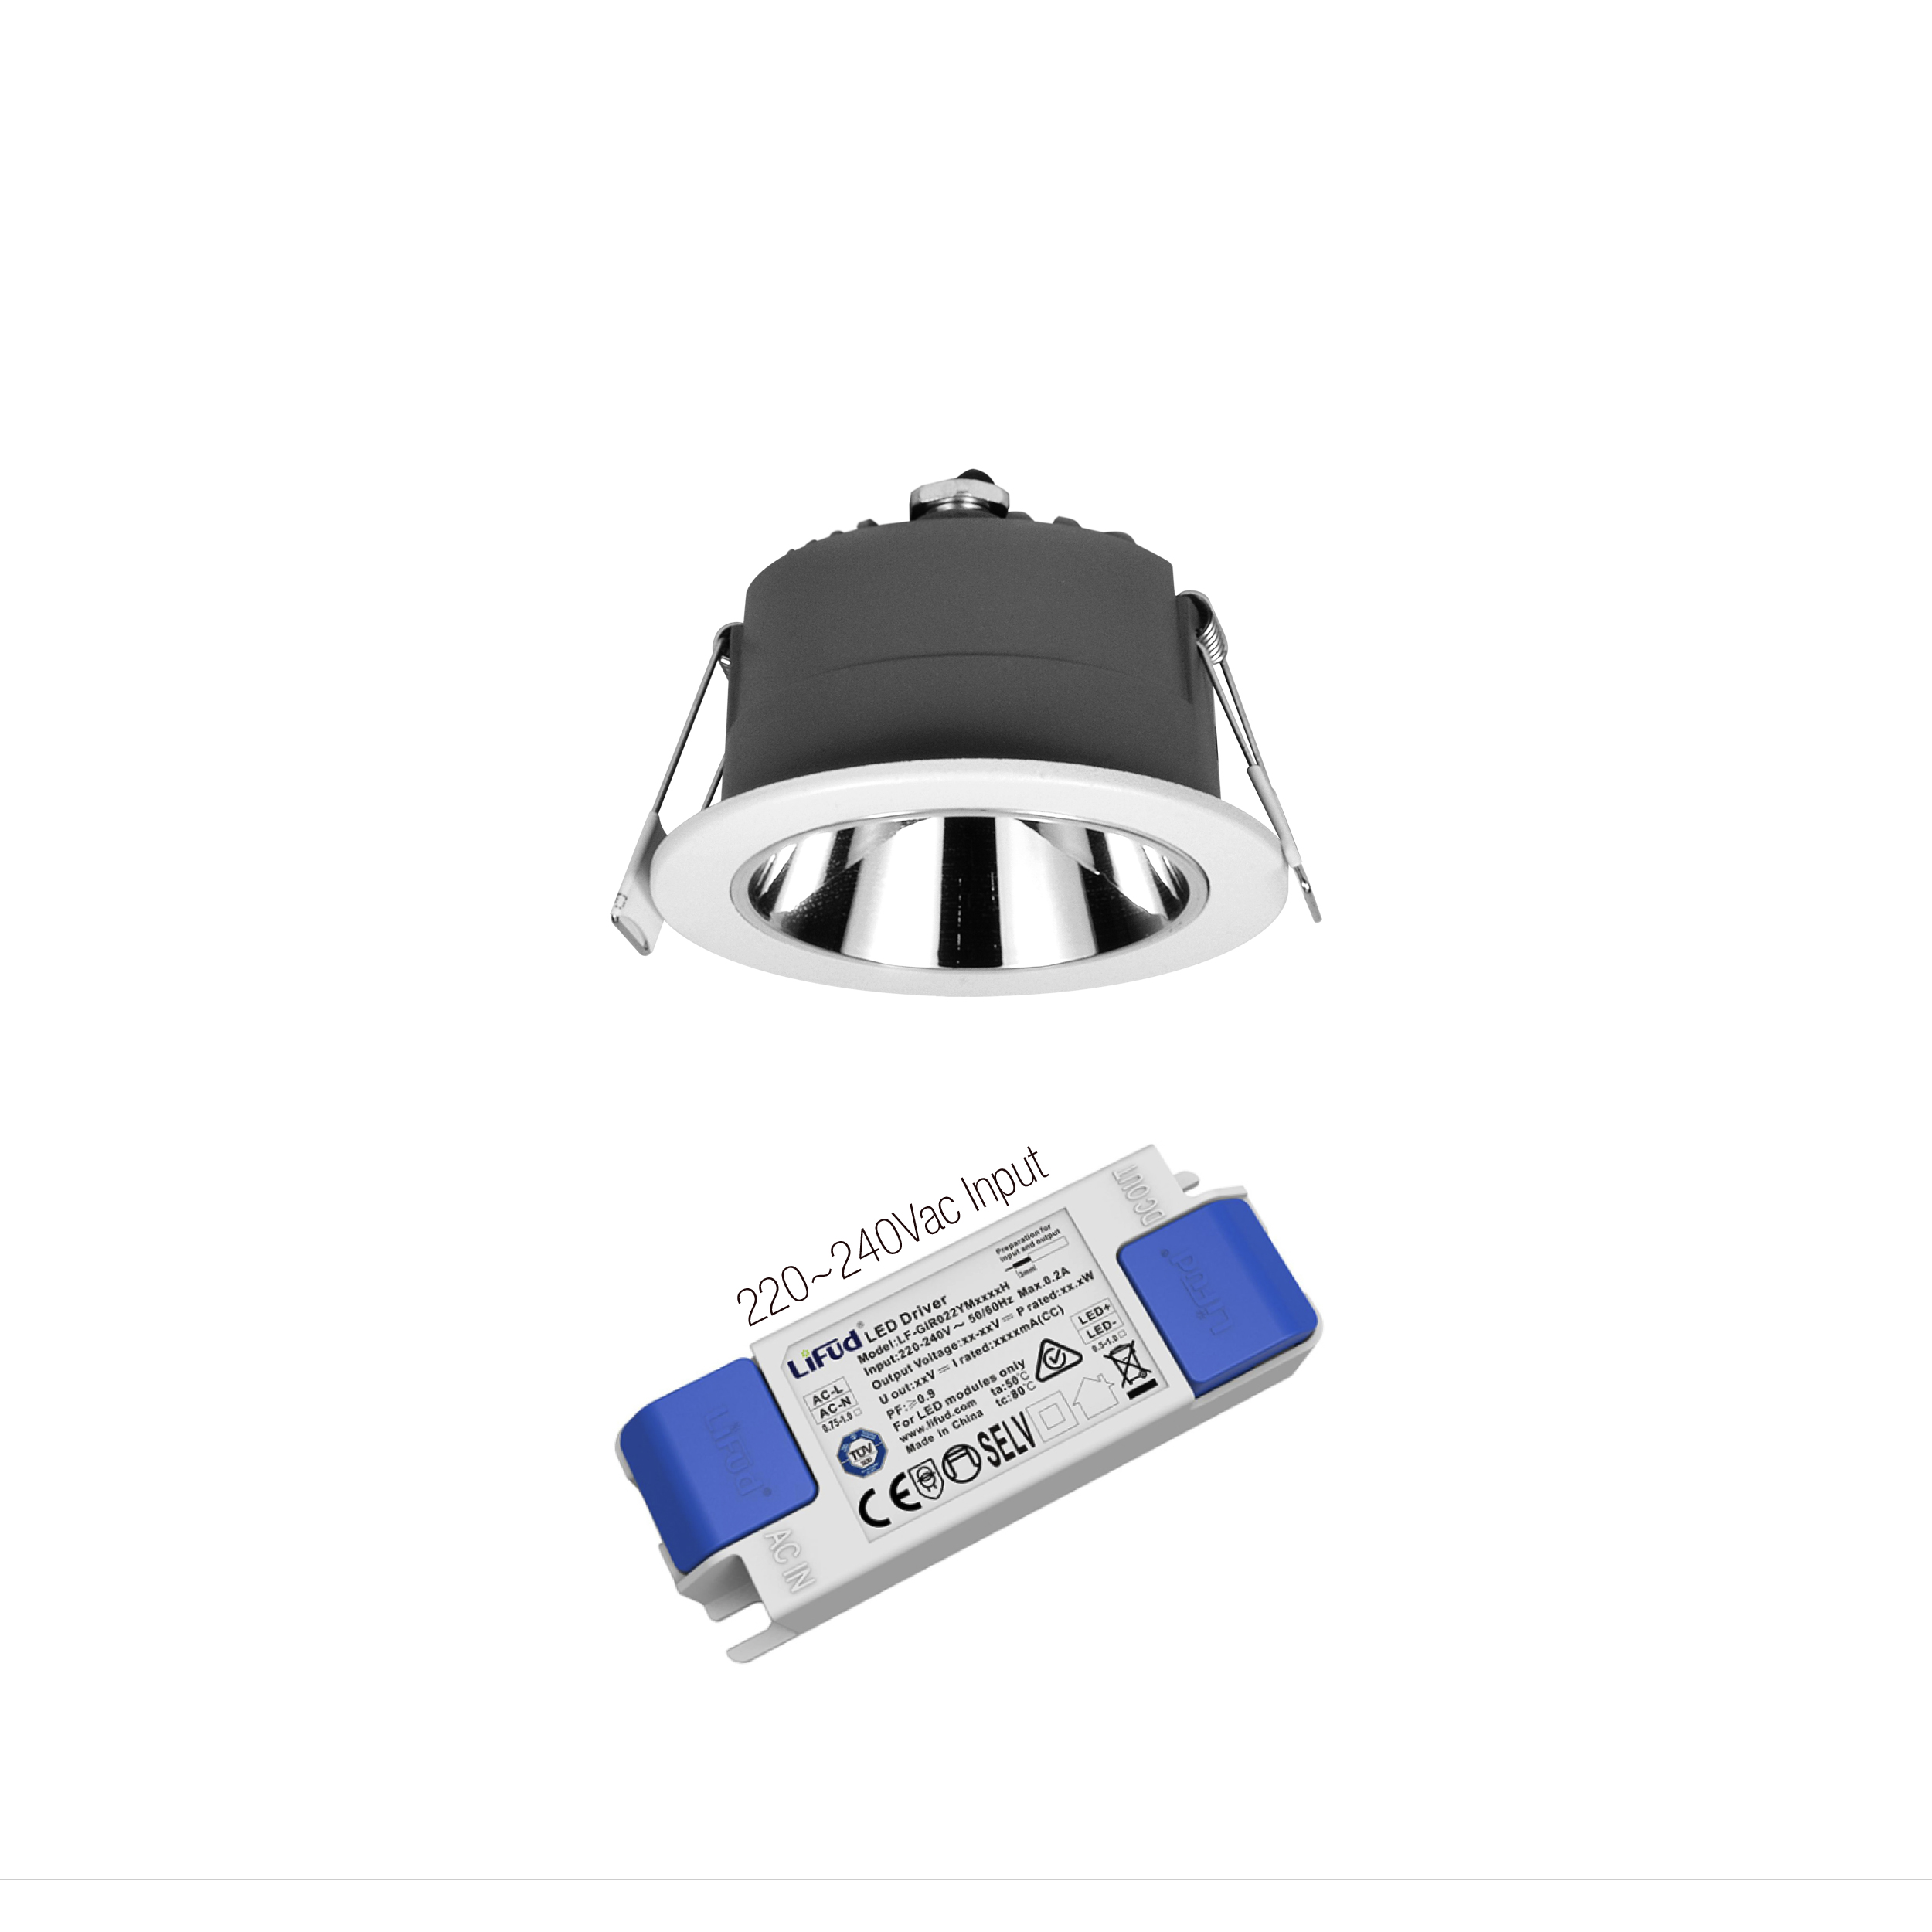 RD3003-0310A2 High Quality Led Downlight anti glare led downlight led down lights with DiaLux service